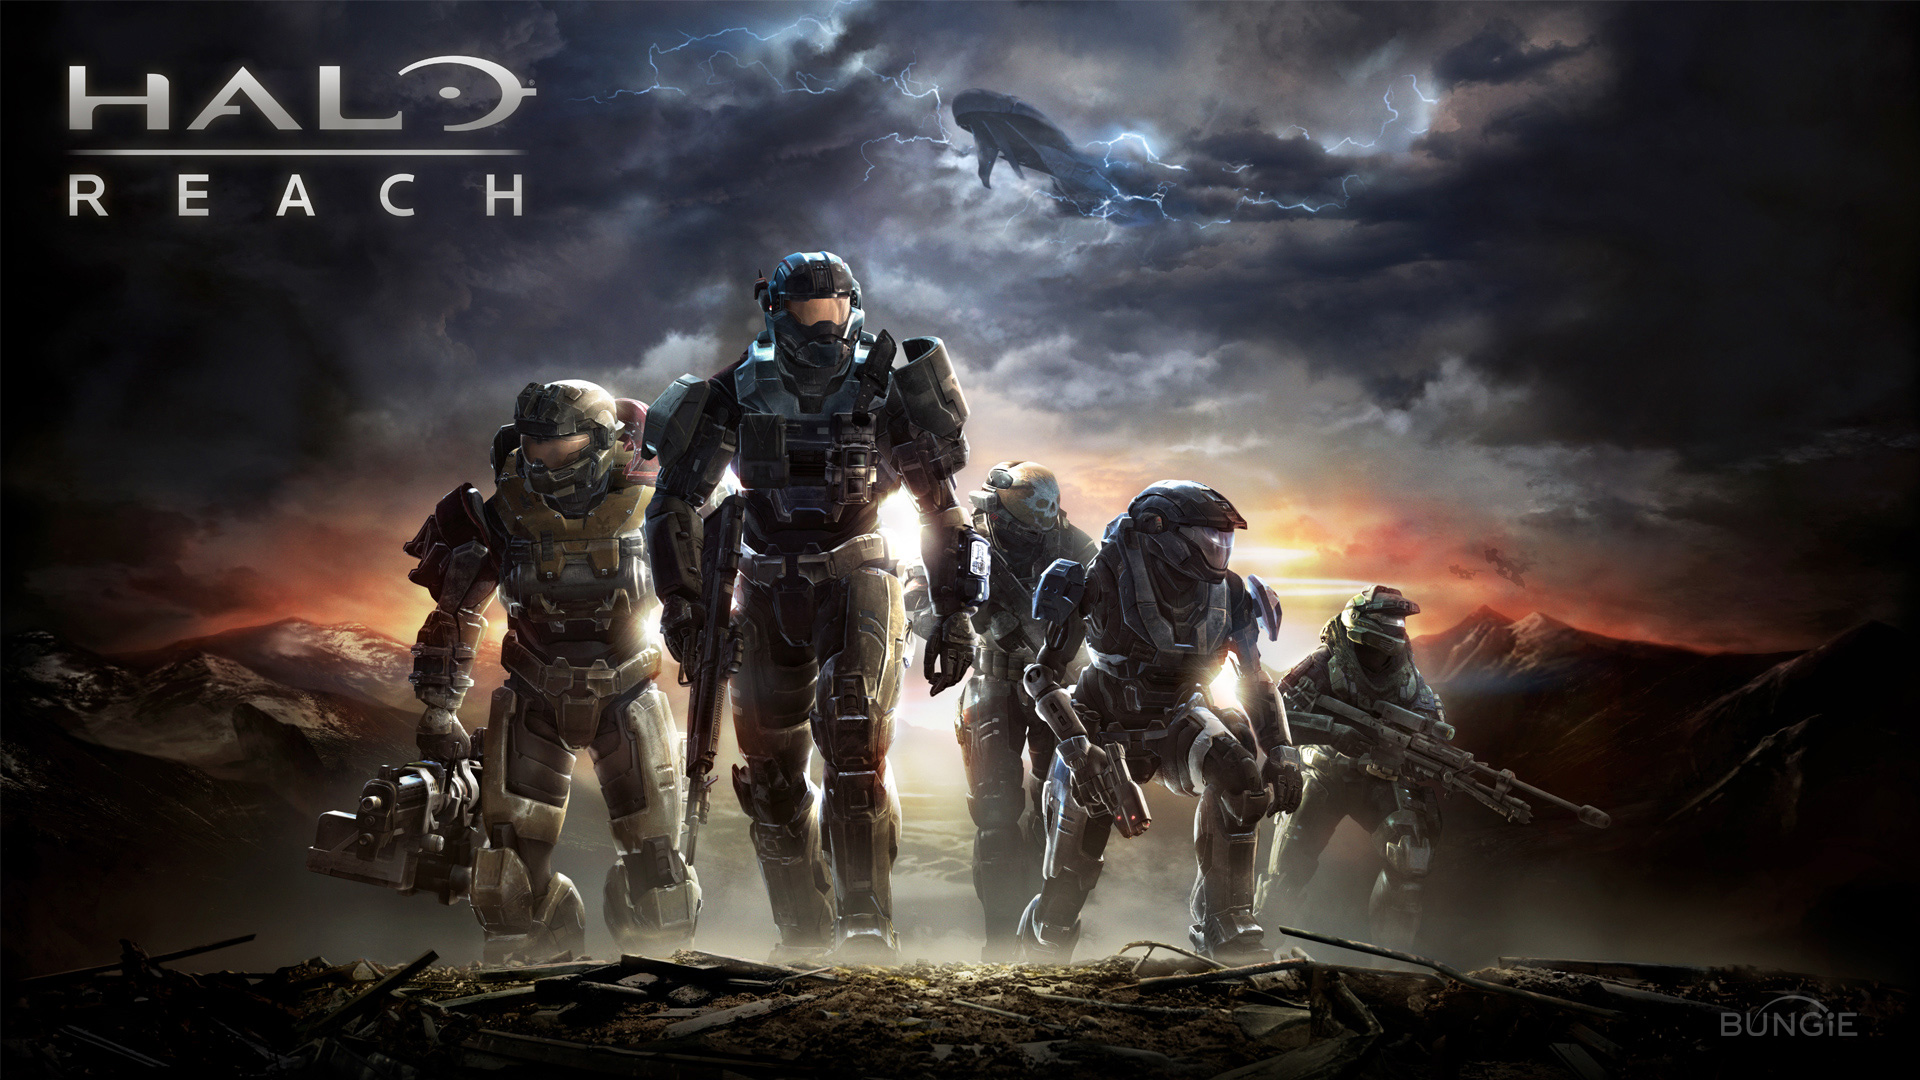 Halo Wallpapers Hd wallpaper   83095 1920x1080